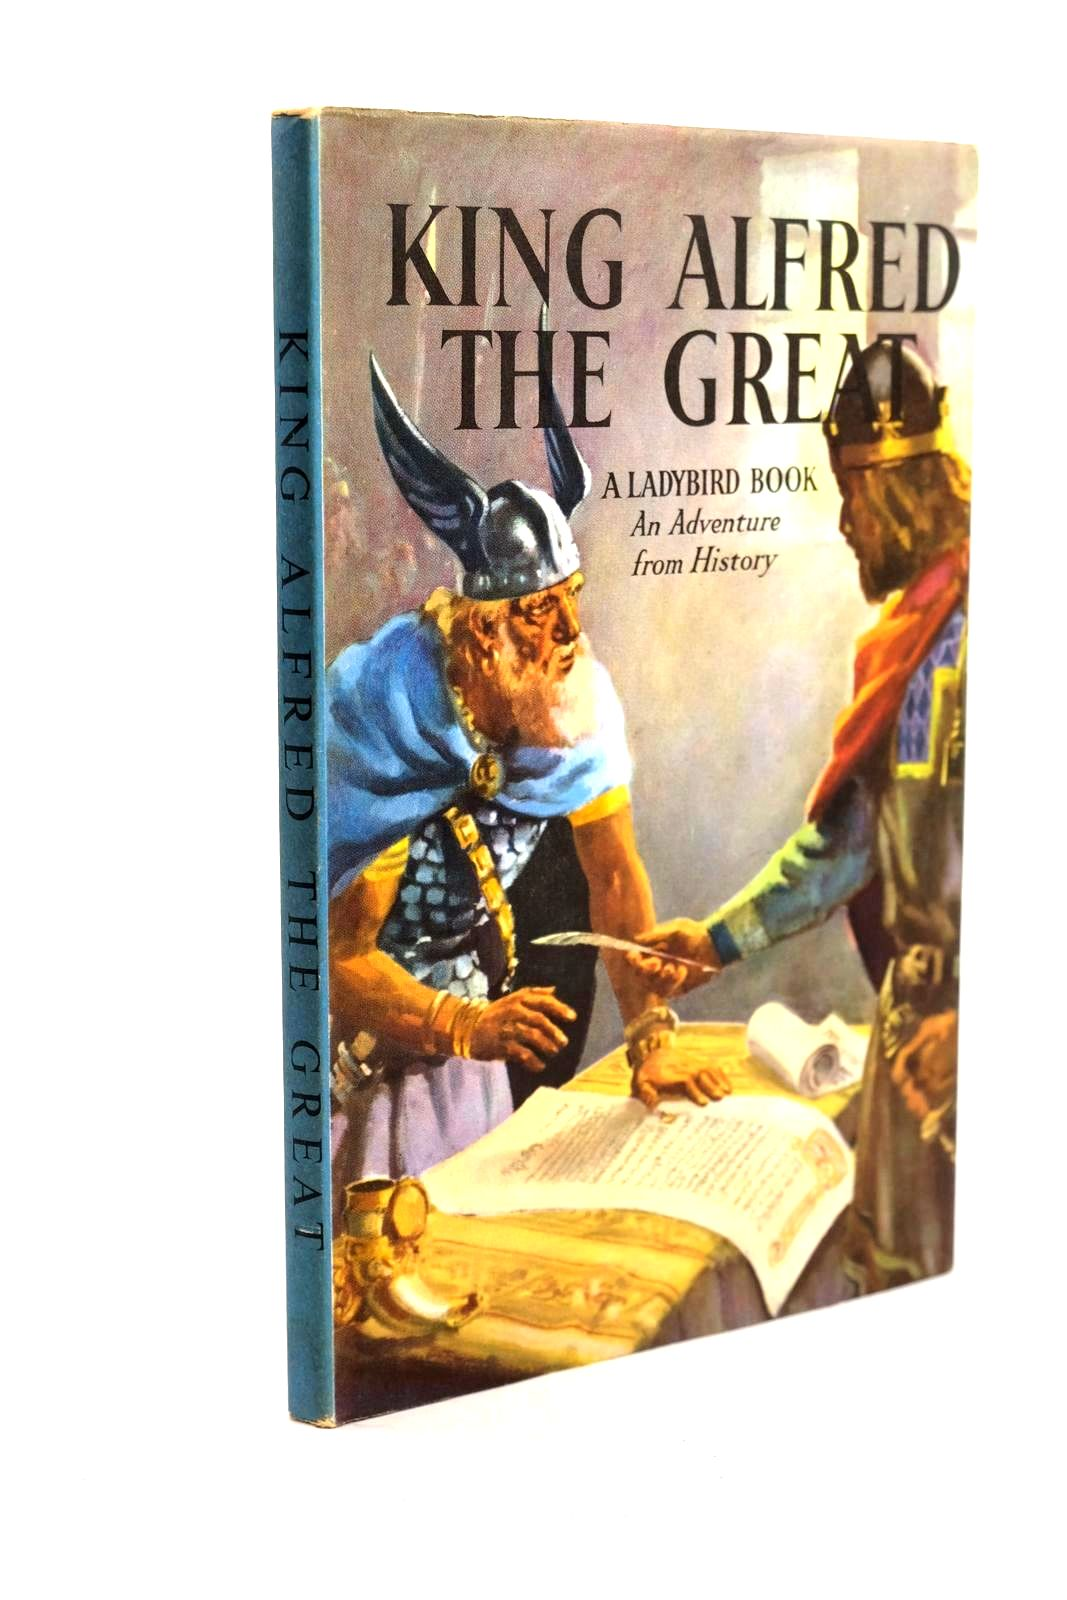 Photo of KING ALFRED THE GREAT written by Peach, L. Du Garde illustrated by Kenney, John published by Wills & Hepworth Ltd. (STOCK CODE: 1320628)  for sale by Stella & Rose's Books